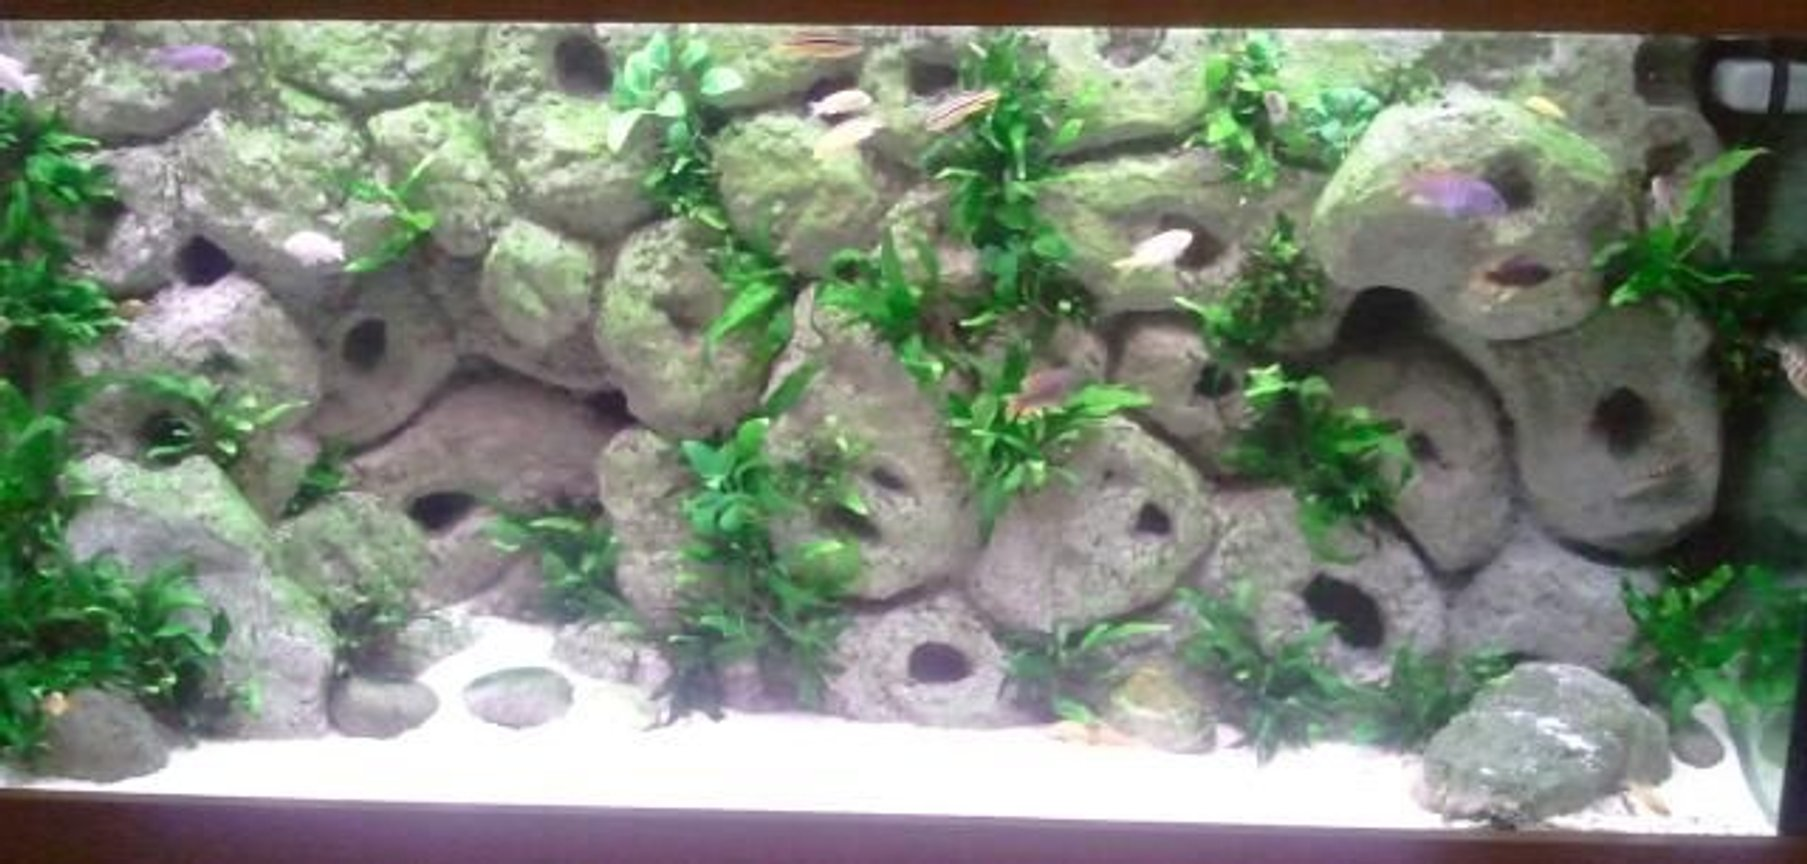 75 gallons freshwater fish tank (mostly fish and non-living decorations) - Malawi tank with DIY background